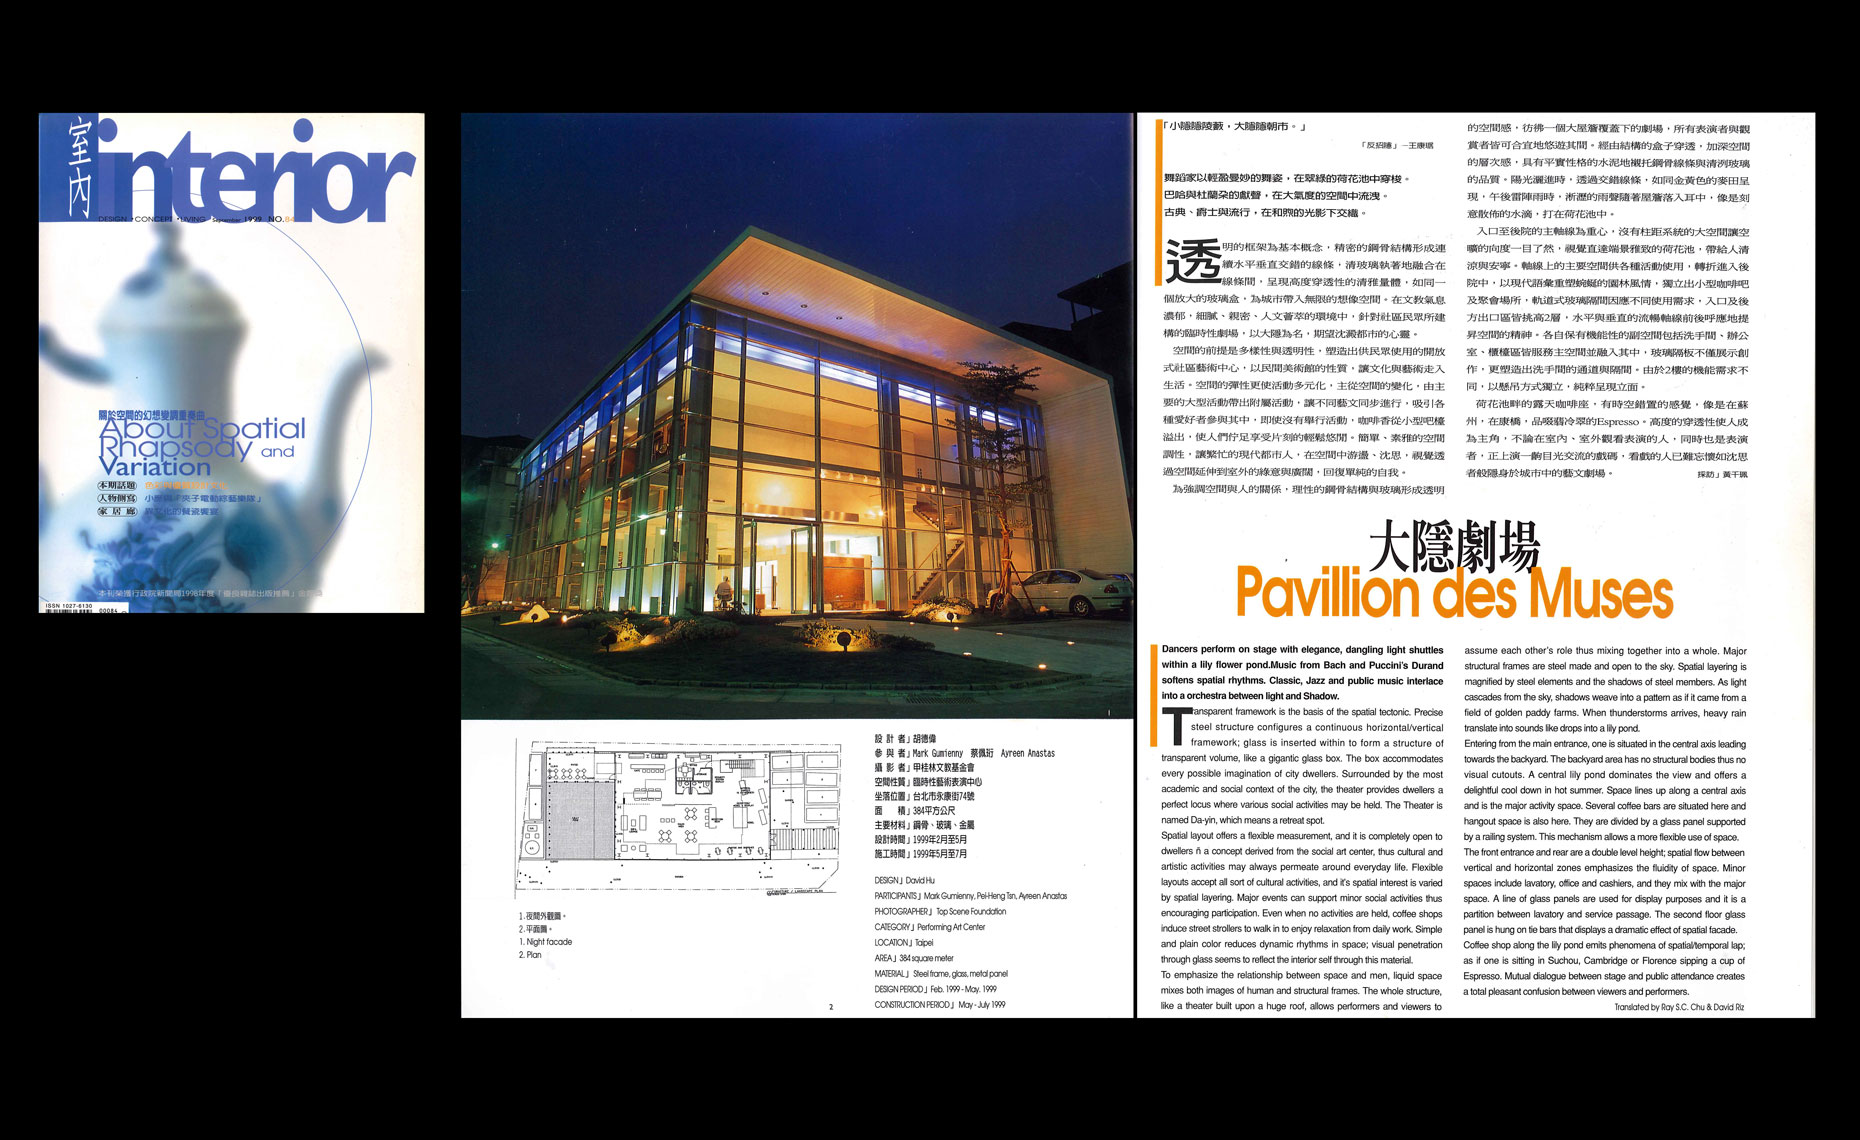 david-hu-architect-press_14.jpg